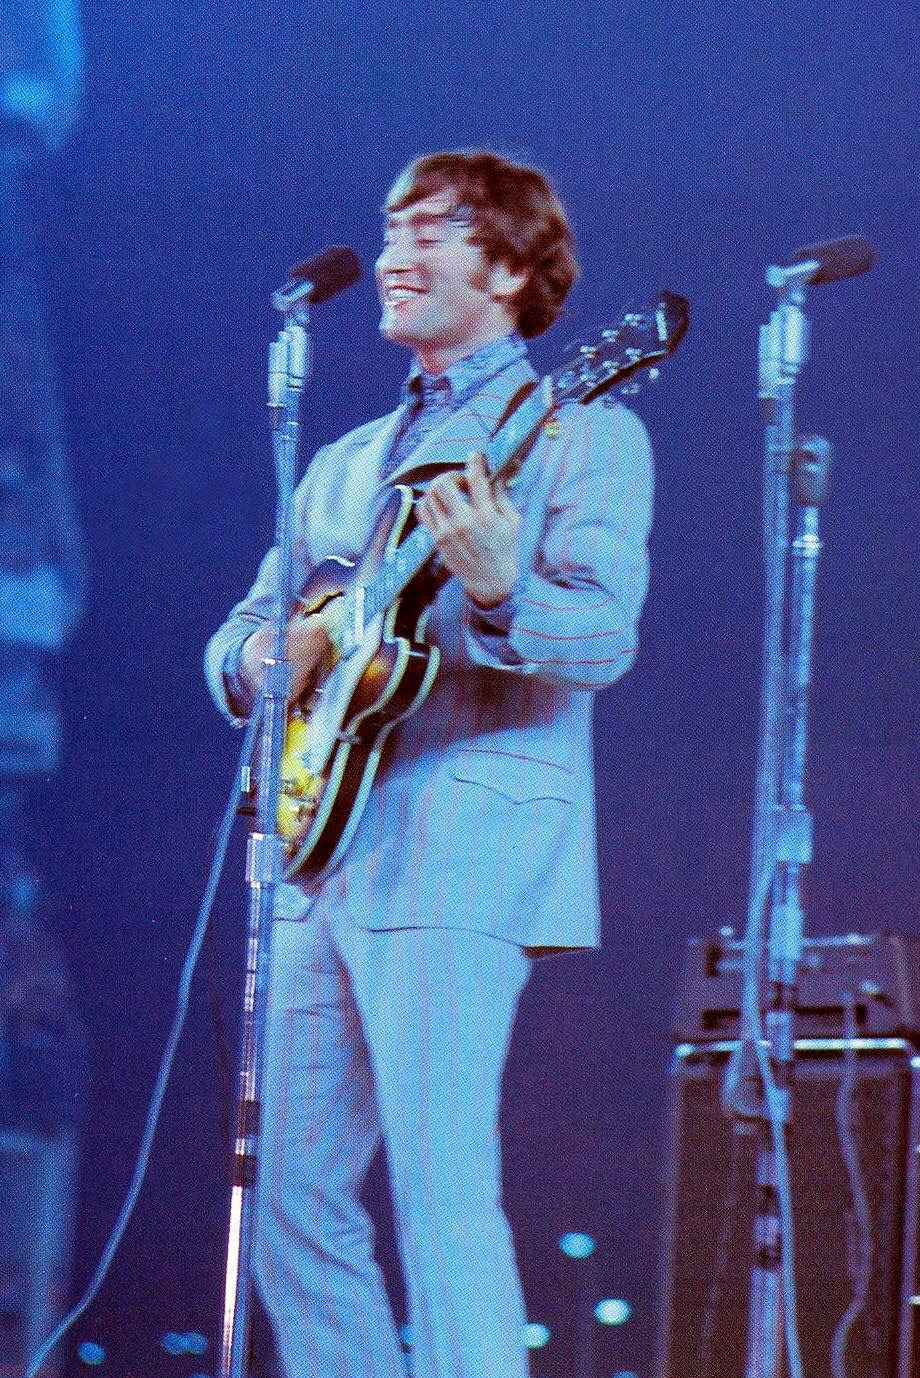 John Lennon at Shea Stadium, August 23rd, 1966.